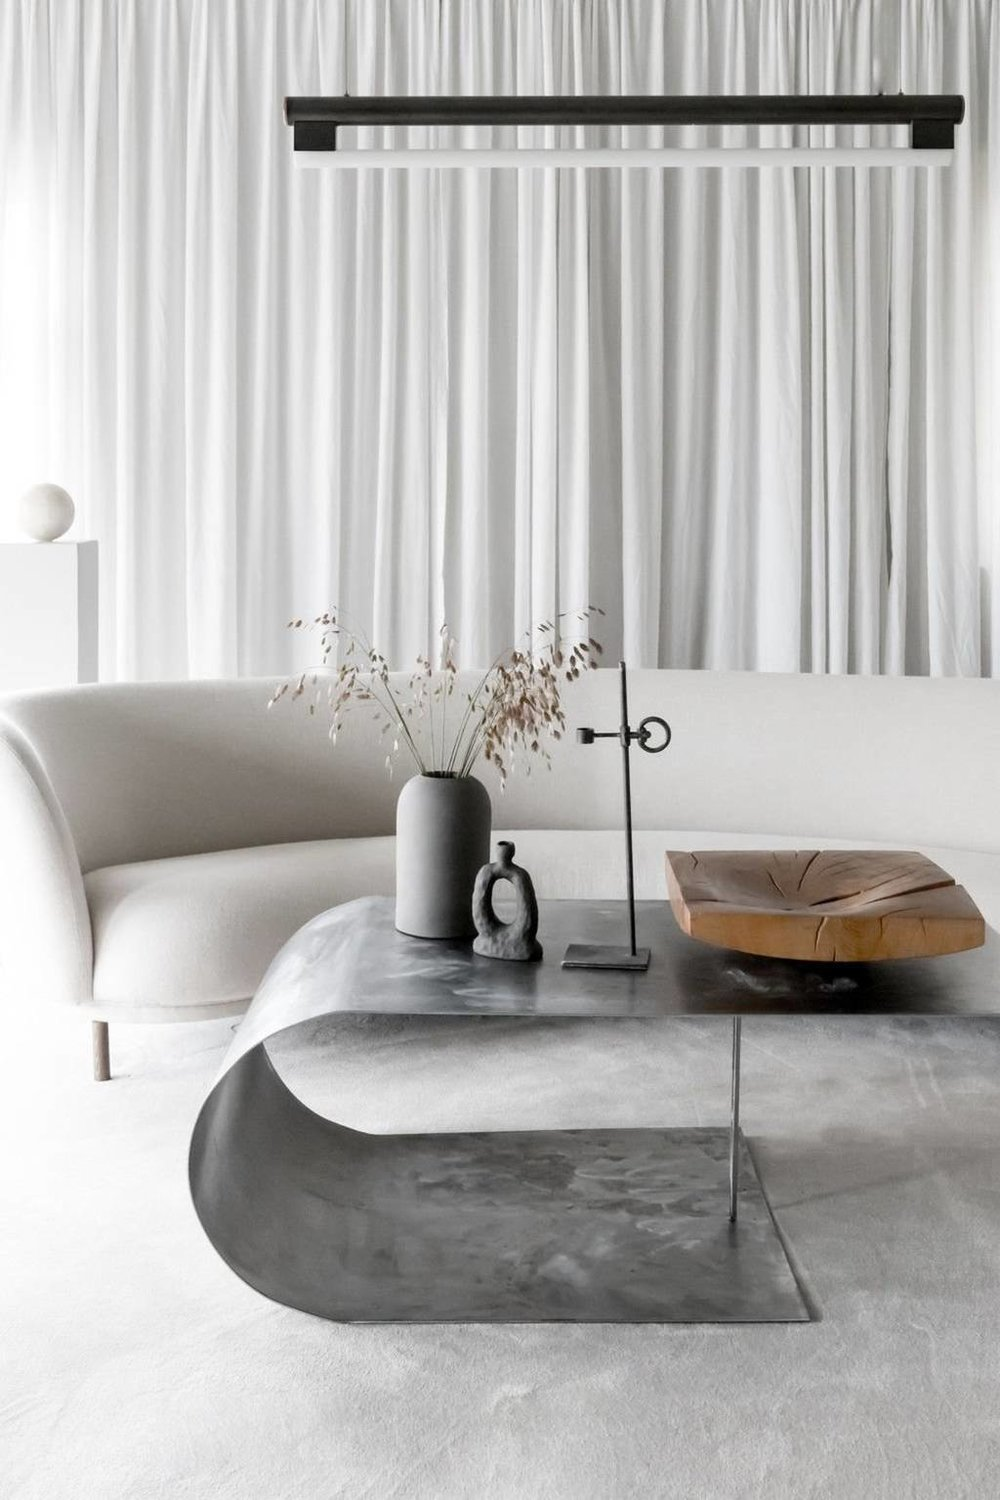 Top 5 Interior Design Trends of 2019 for Decorating your home by The Savvy Heart